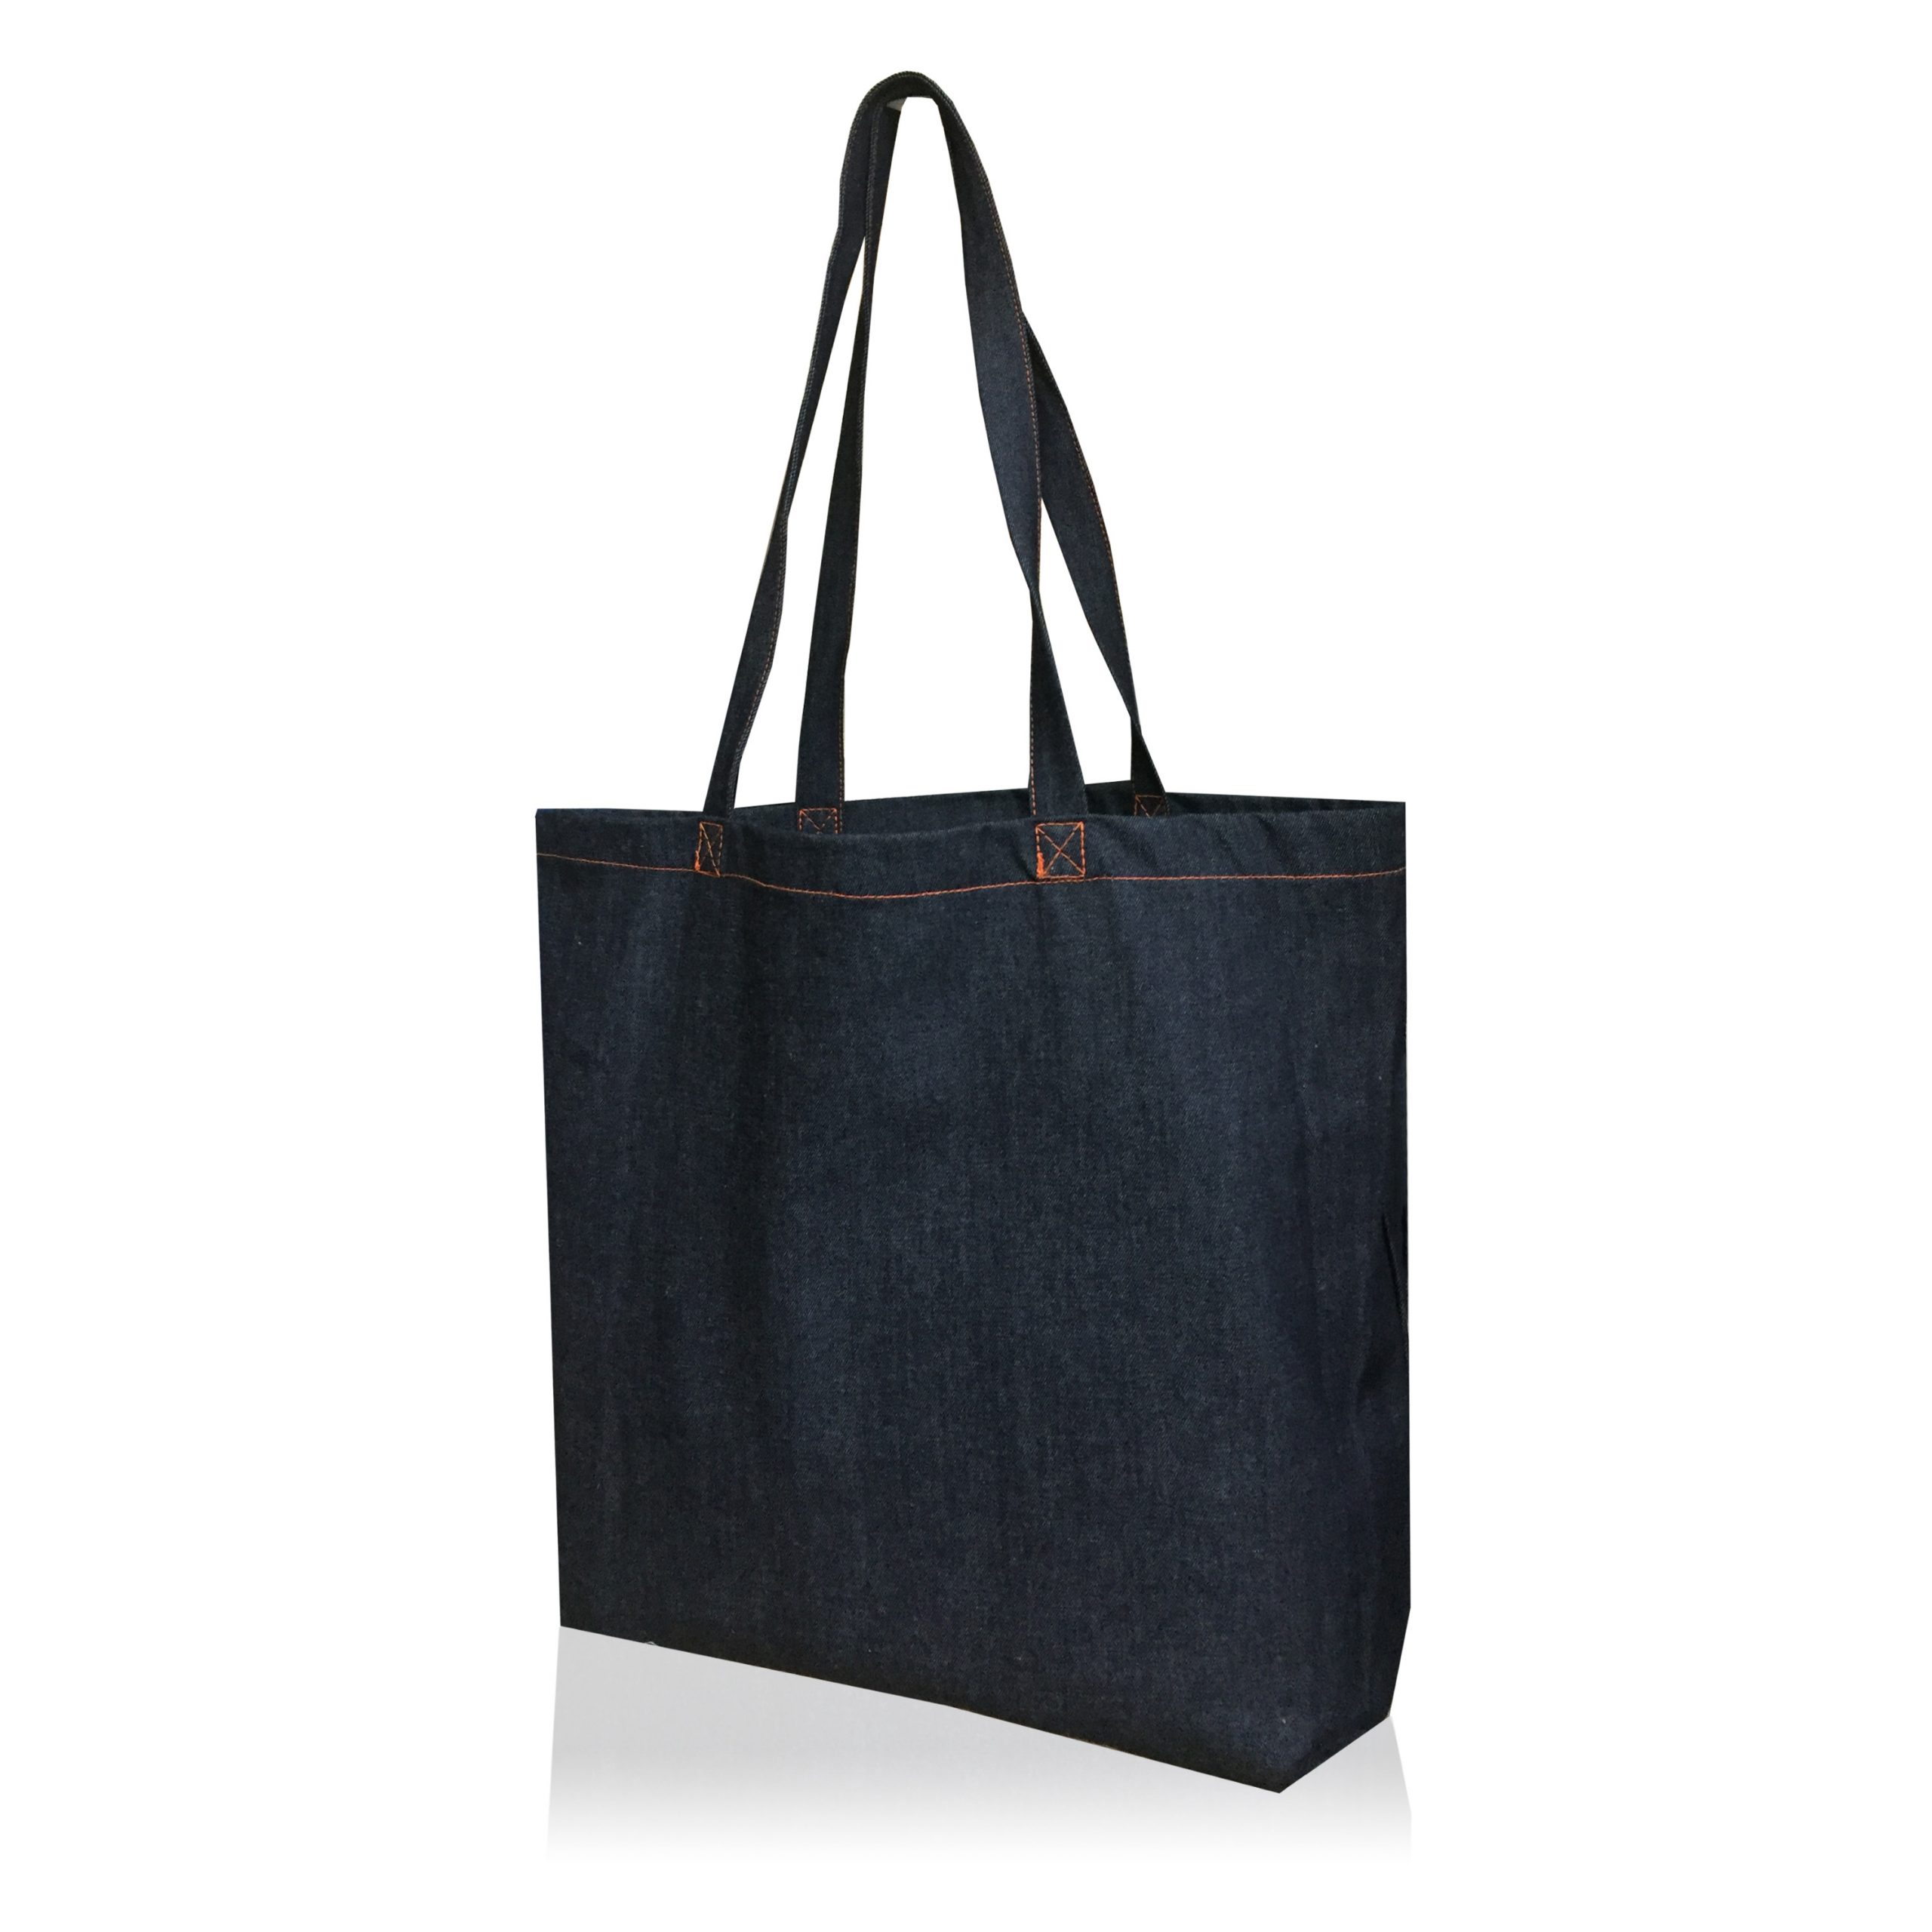 Tote bag en denim avec fond